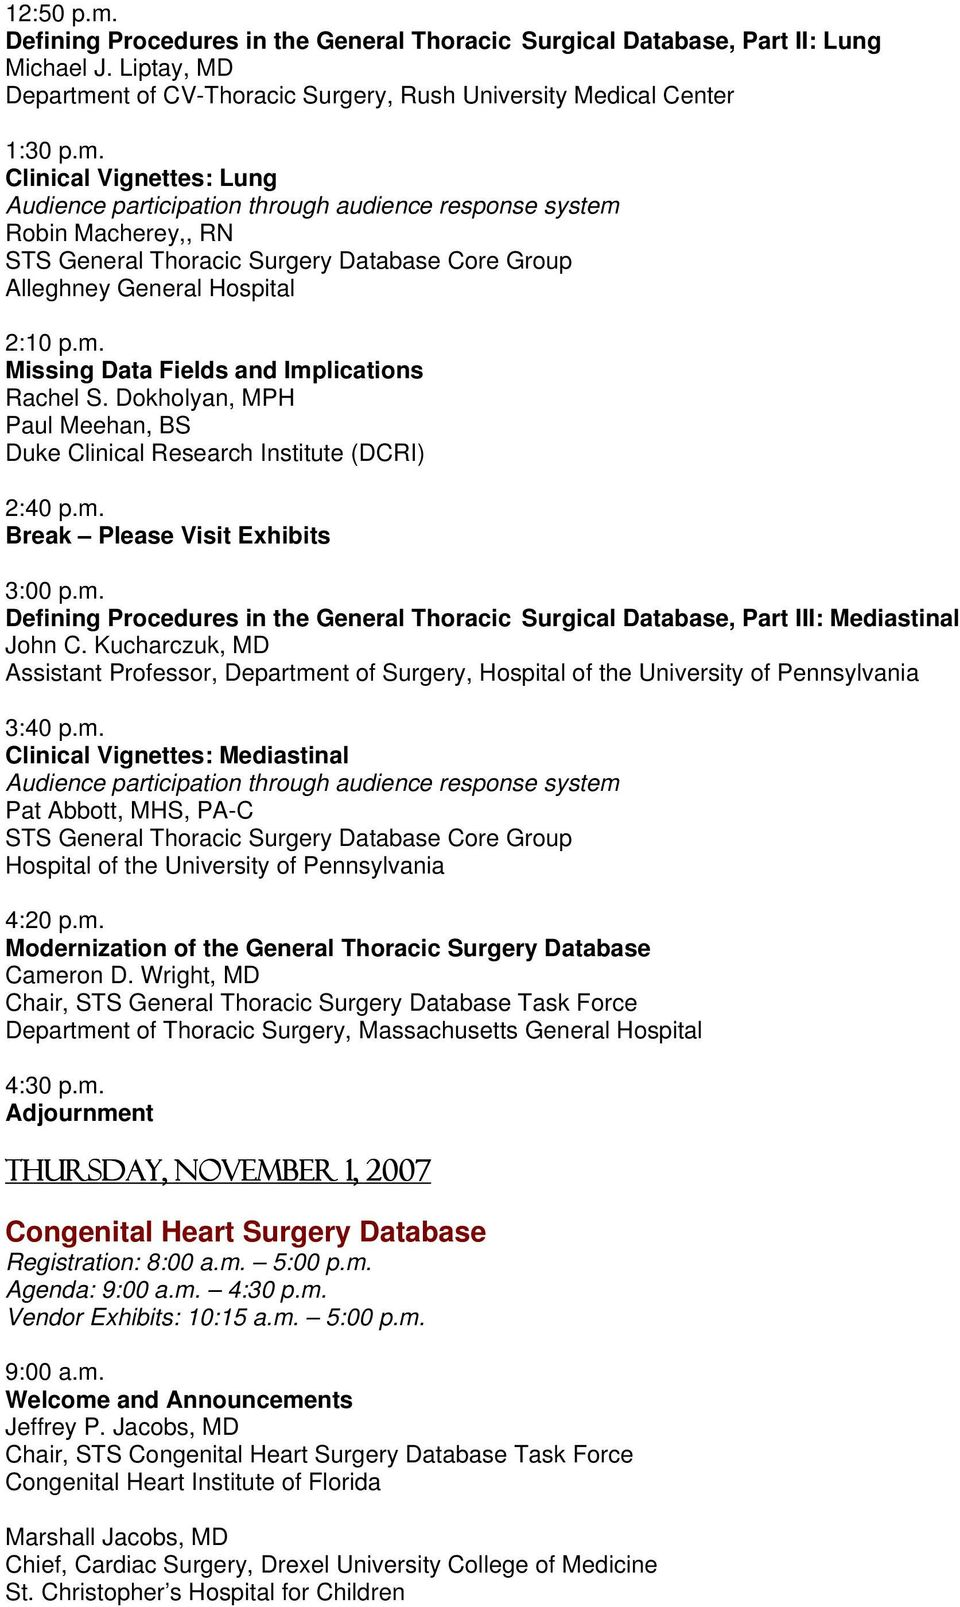 Kucharczuk, MD Assistant Professor, Department of Surgery, Hospital of the University of Pennsylvania 3:40 p.m. Clinical Vignettes: Mediastinal Pat Abbott, MHS, PA-C STS General Thoracic Surgery Database Core Group Hospital of the University of Pennsylvania 4:20 p.